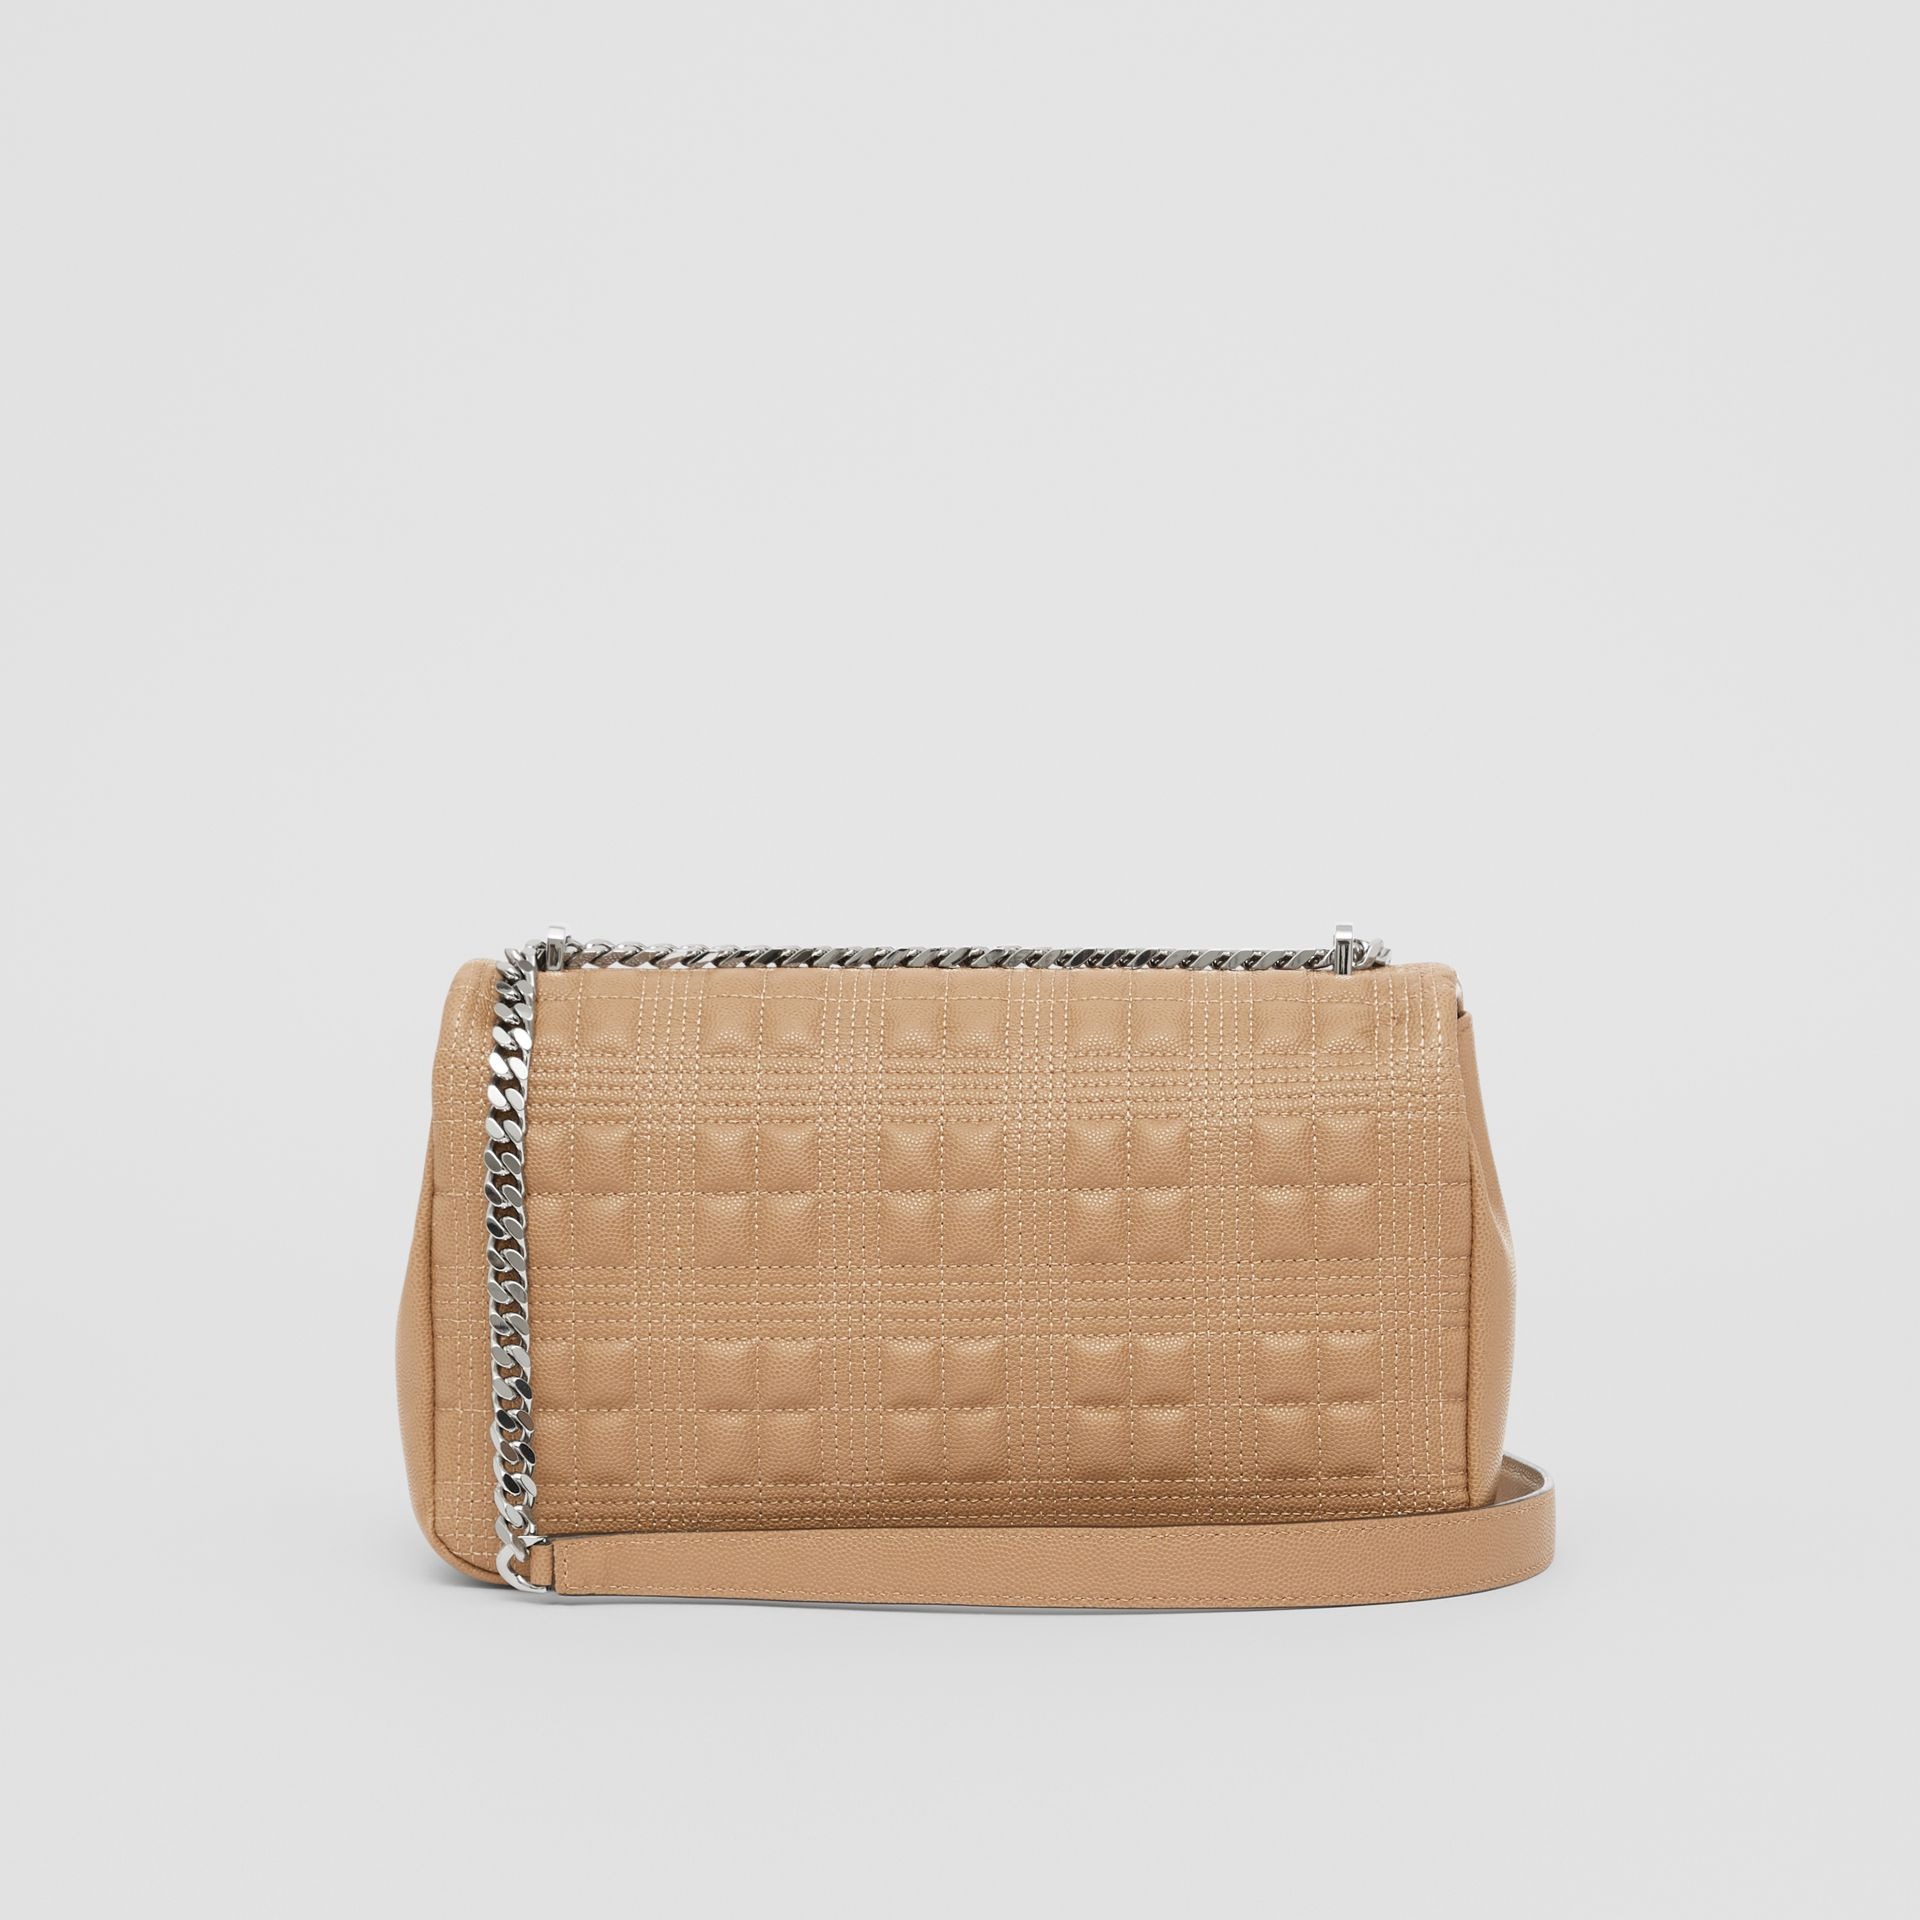 Medium Quilted Grainy Leather Lola Bag in Camel/palladium - Women | Burberry Hong Kong S.A.R. - gallery image 7